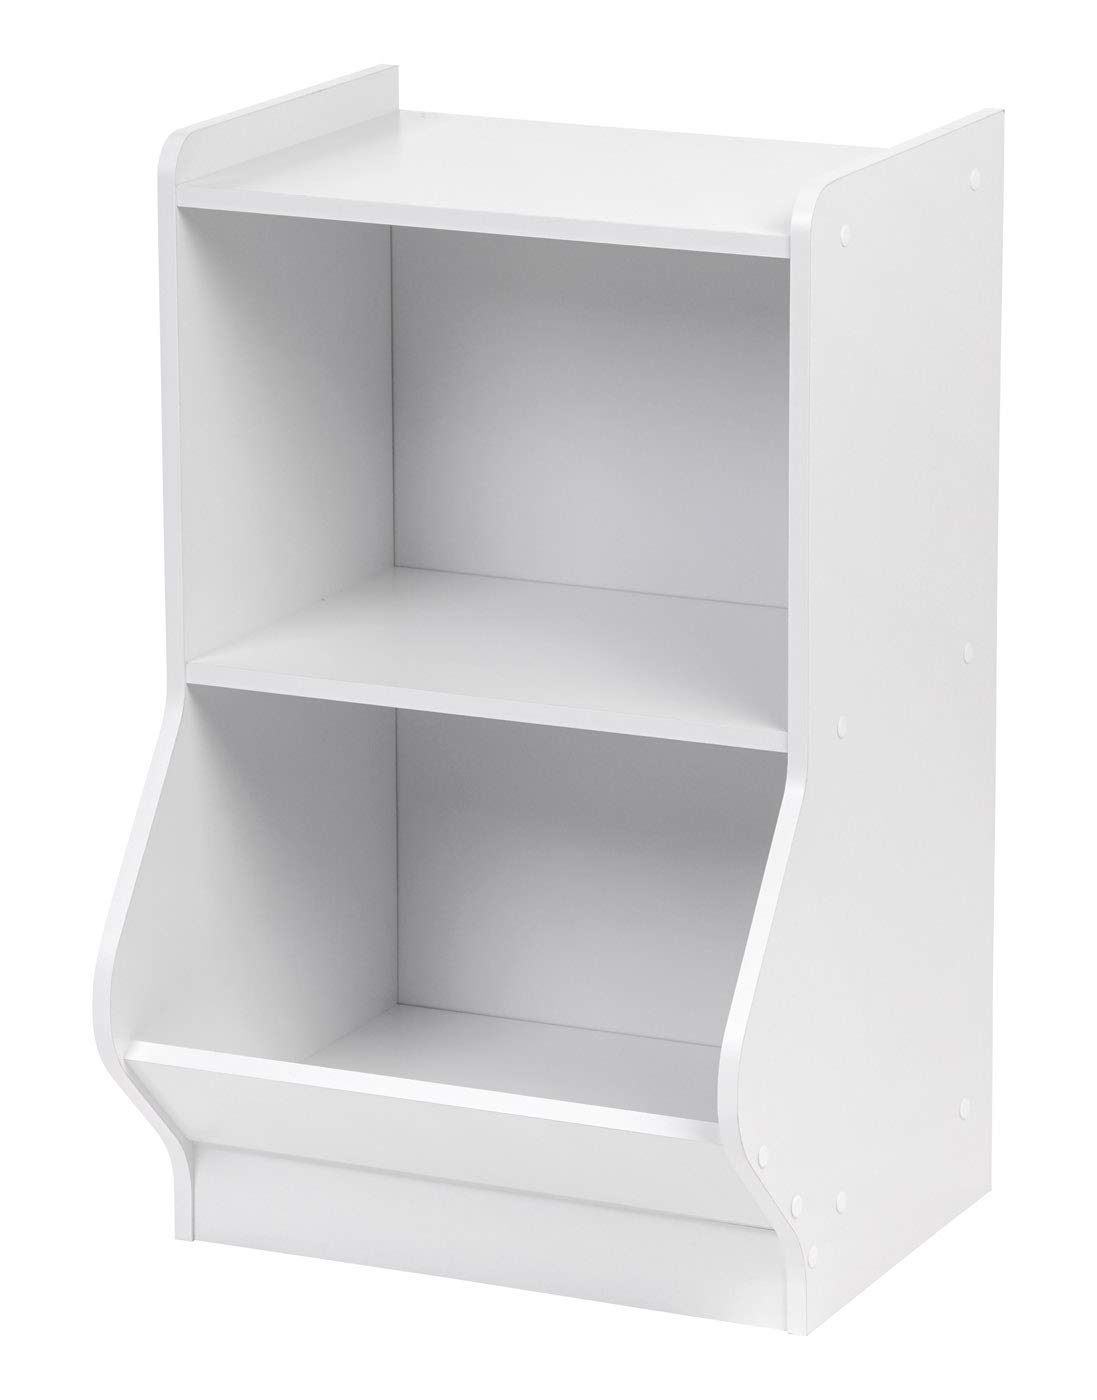 IRIS 2-Tier Storage Organizer Shelf with Footboard, White